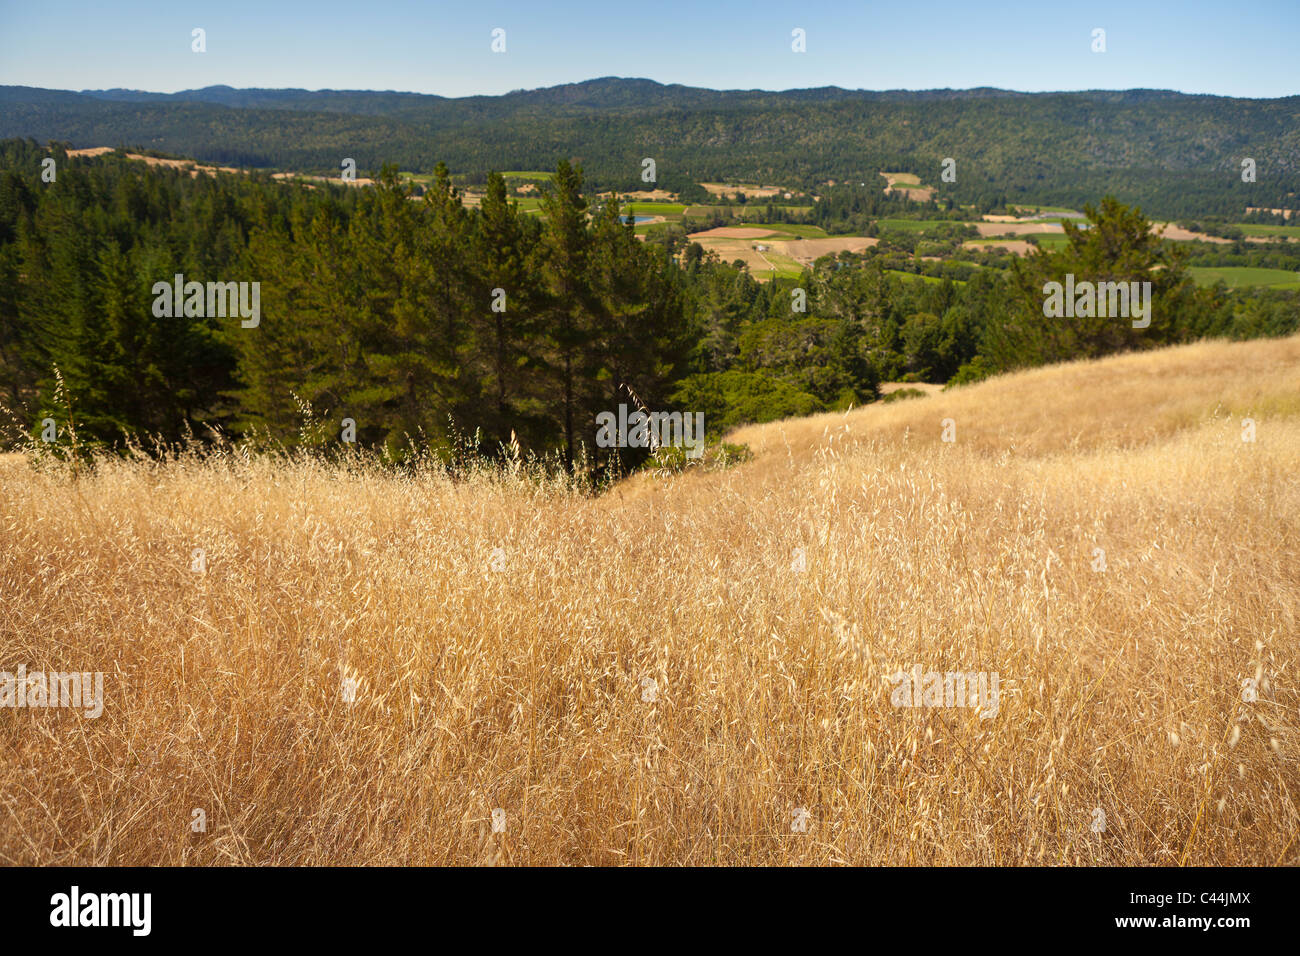 MENDOCINO COUNTY, CALIFORNIA, USA - landscape in Anderson Valley. - Stock Image